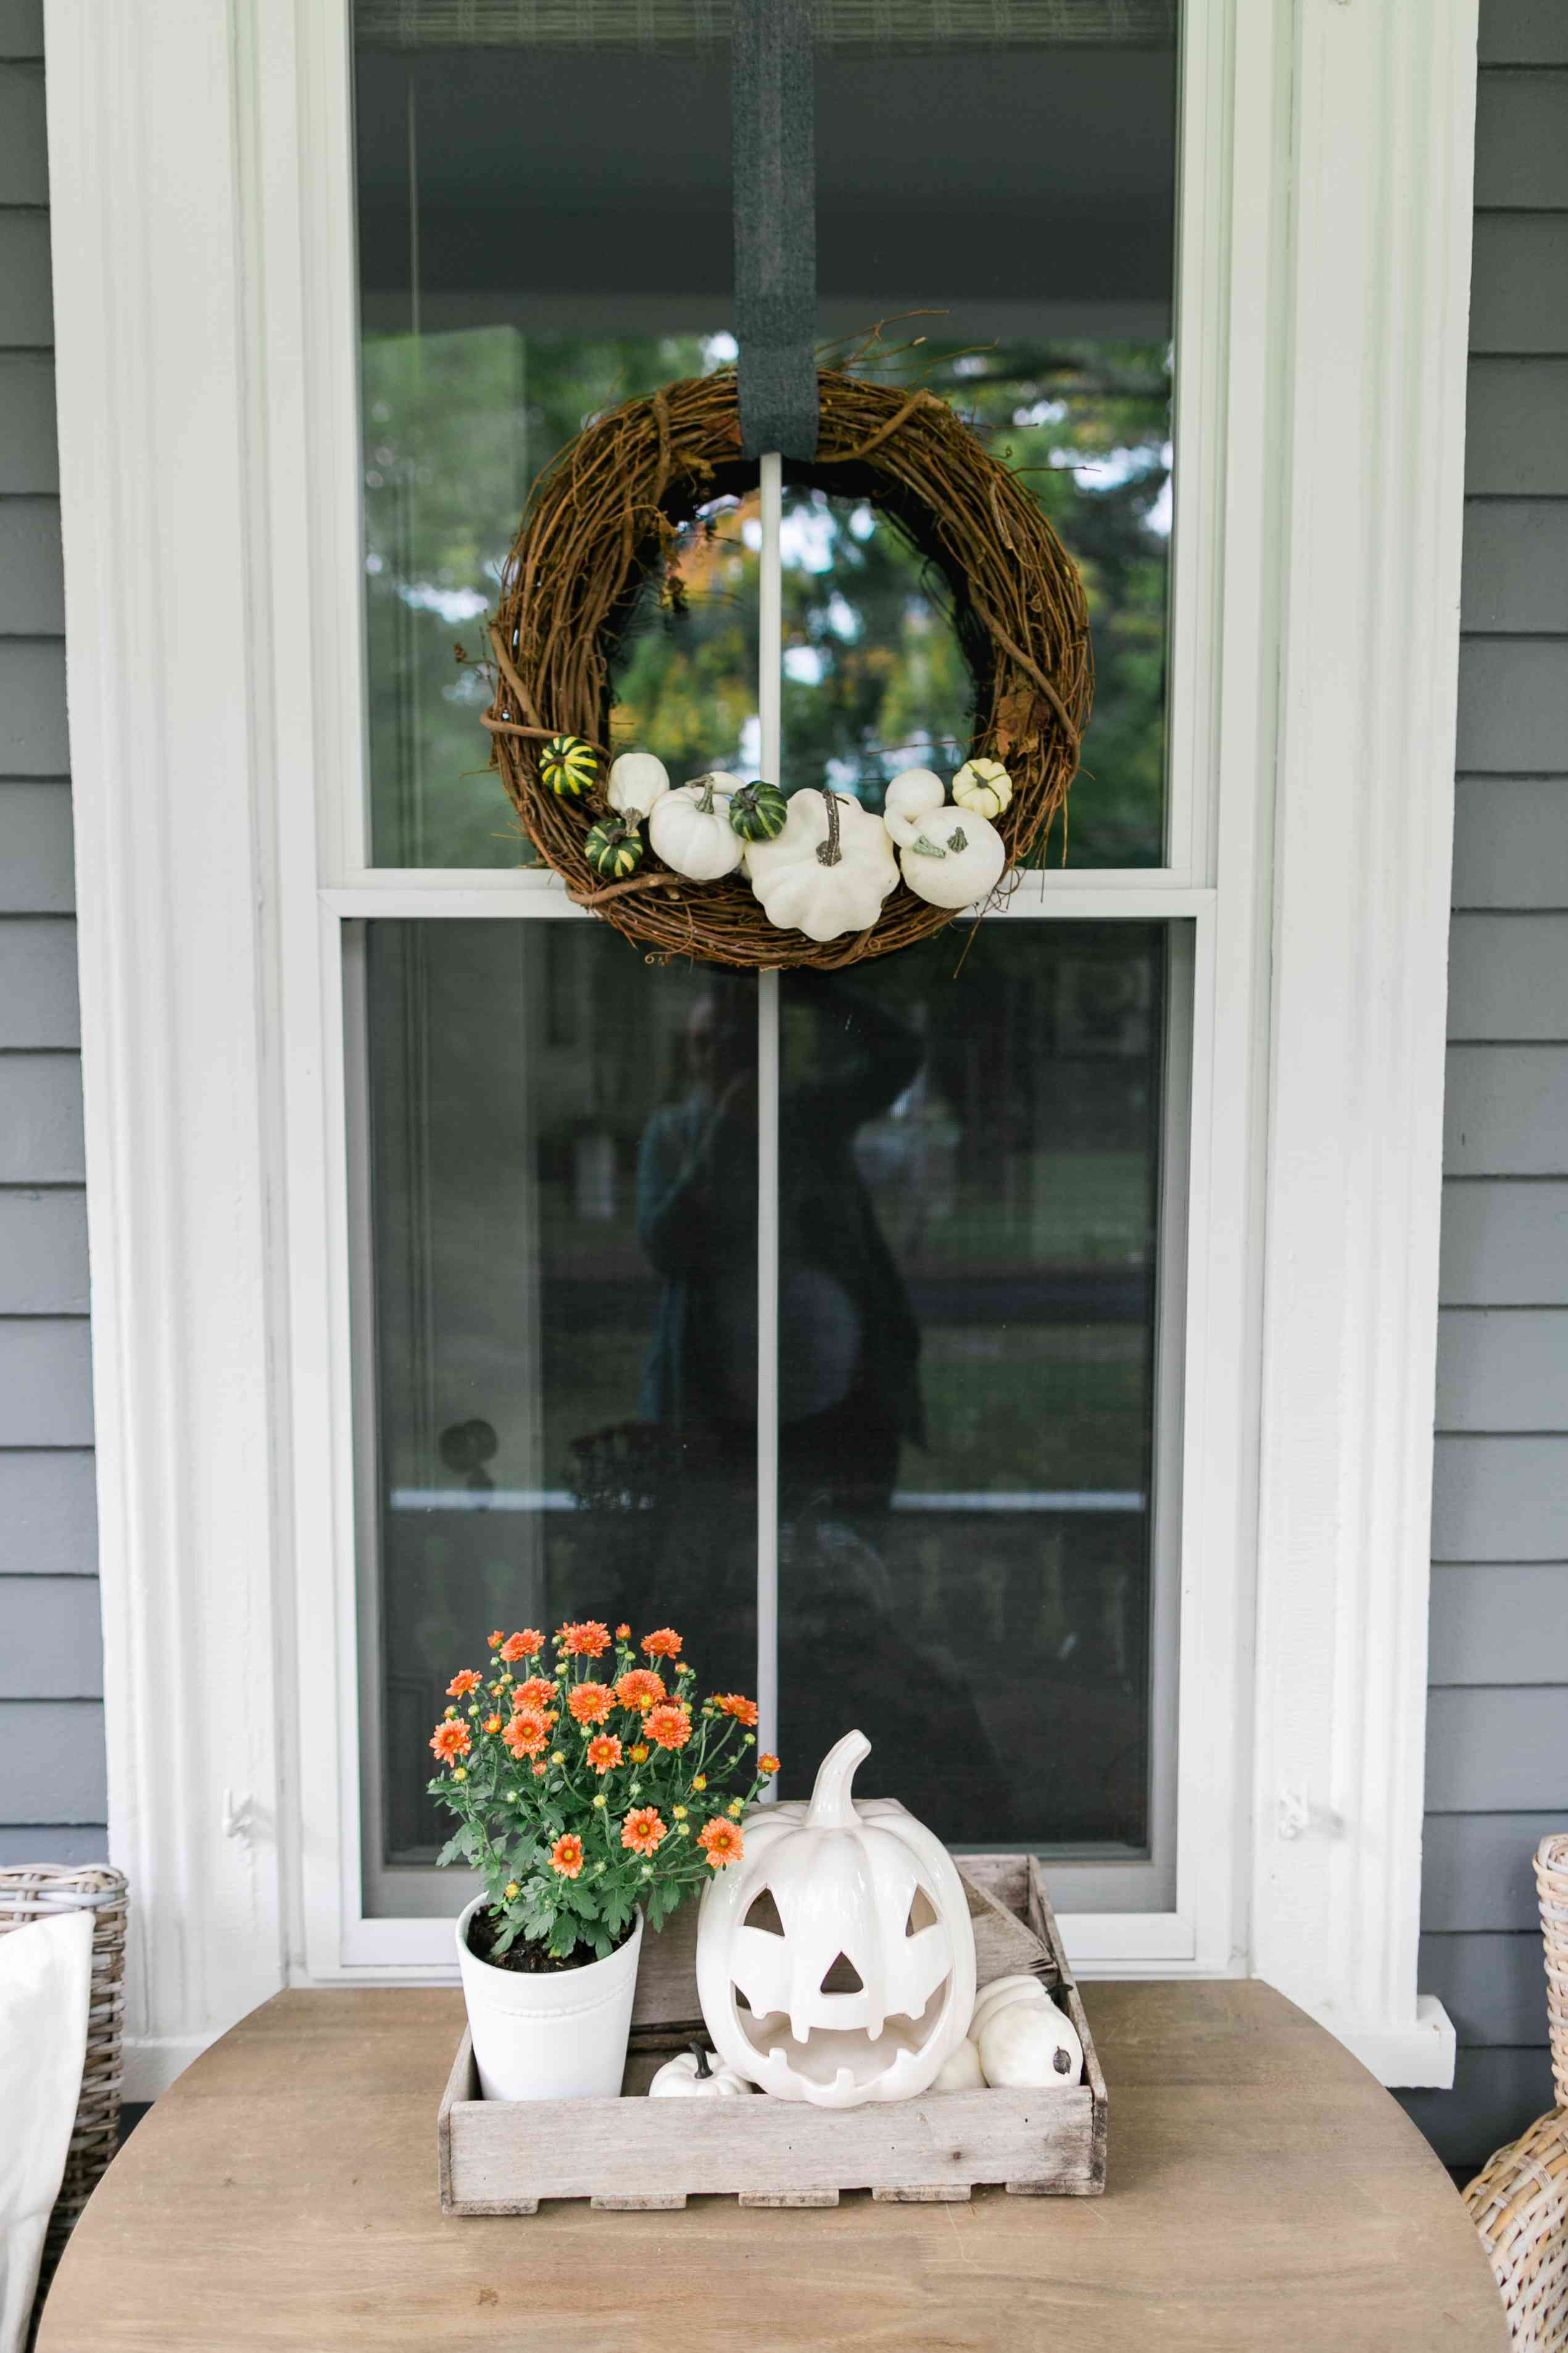 Wreath with pumpkins on it